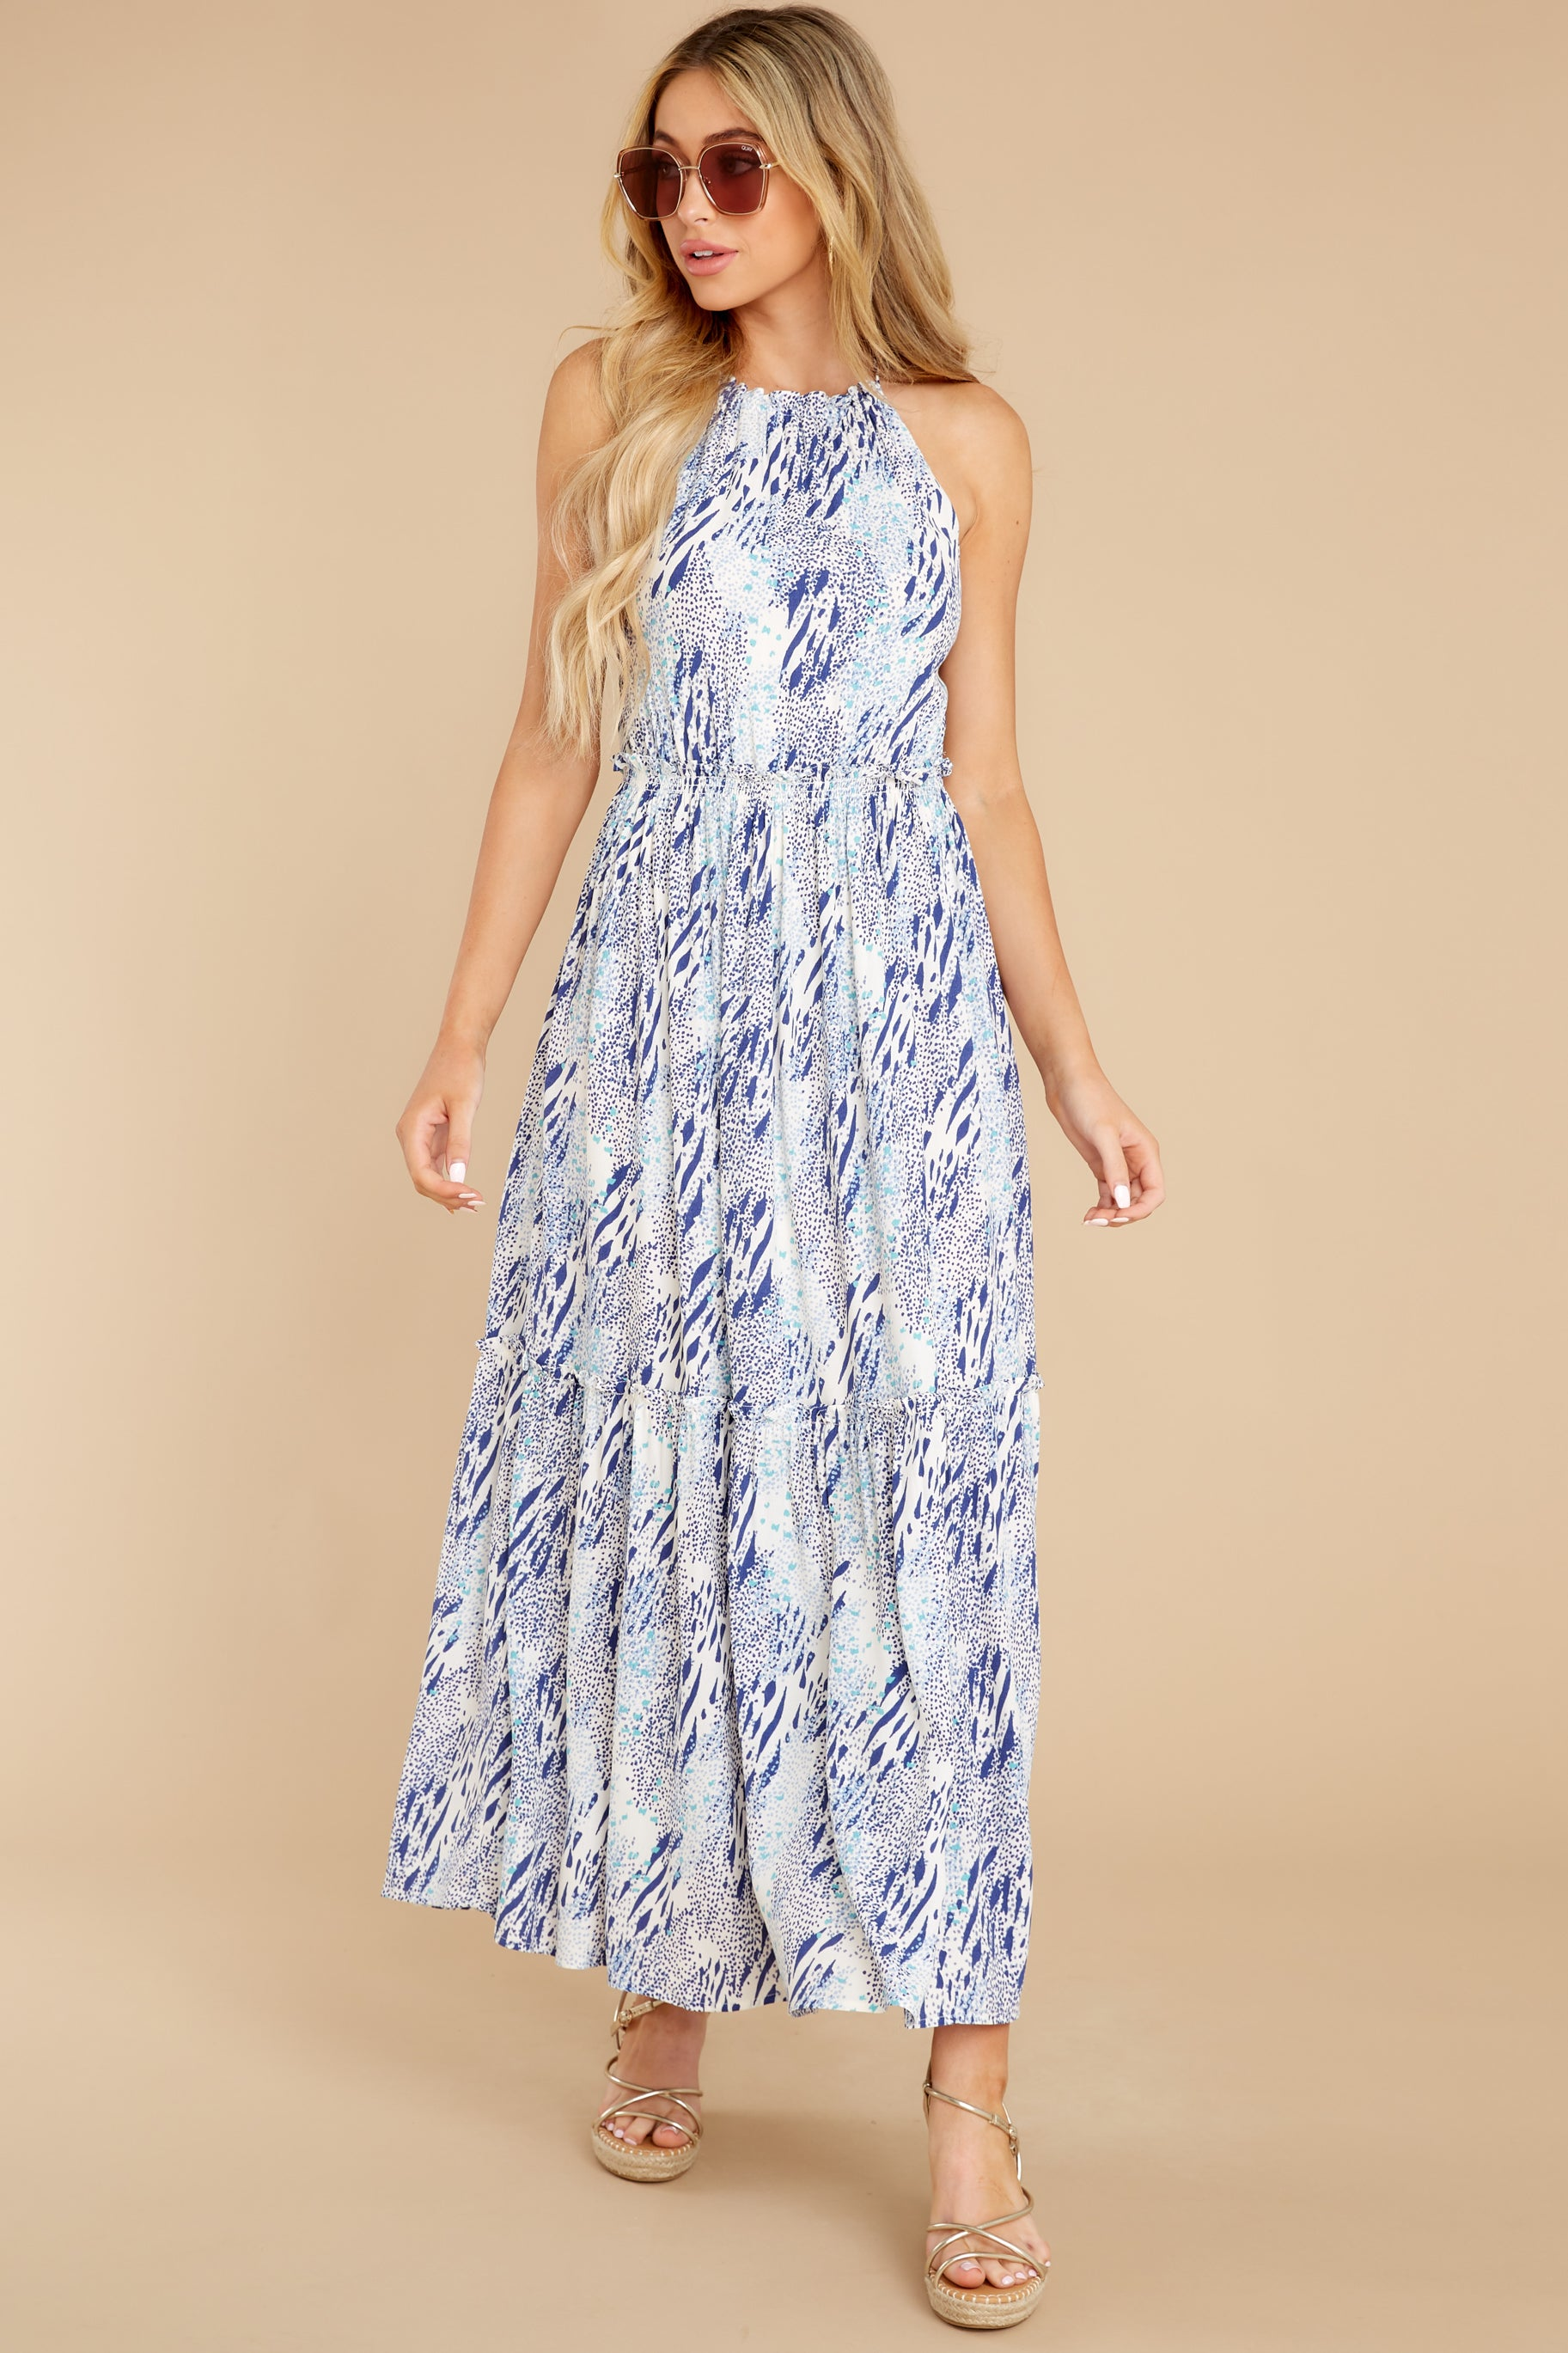 4 Standing Water Blue Multi Print Maxi Dress at reddress.com